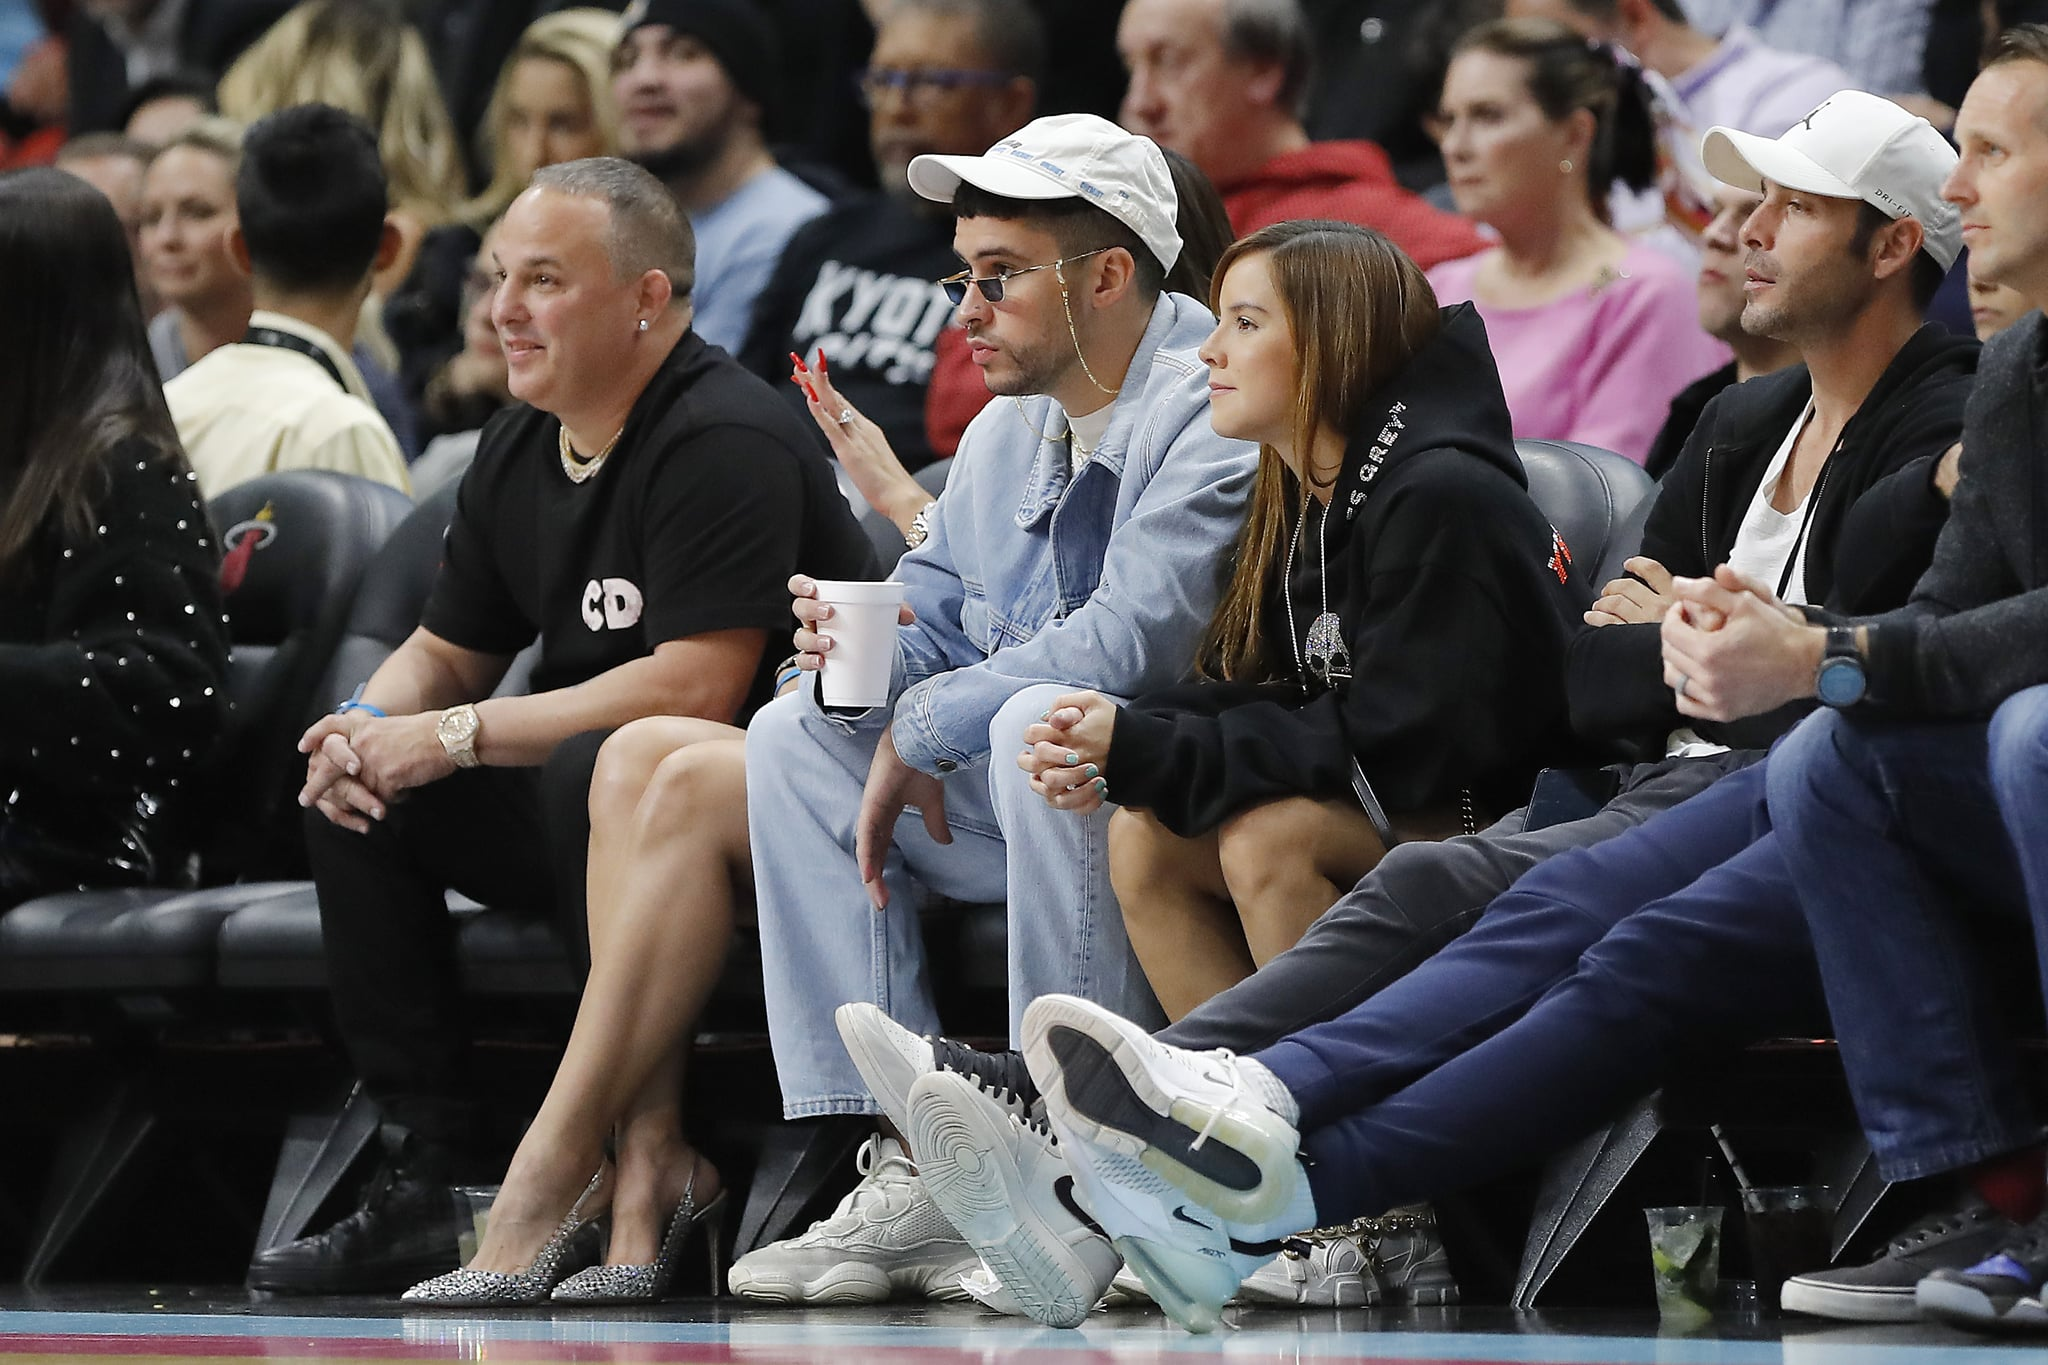 MIAMI, FLORIDA - FEBRUARY 28:  Music artist Bad Bunny looks on during the first half between the Miami Heat and the Dallas Mavericks at American Airlines Arena on February 28, 2020 in Miami, Florida. NOTE TO USER: User expressly acknowledges and agrees that, by downloading and/or using this photograph, user is consenting to the terms and conditions of the Getty Images License Agreement.  (Photo by Michael Reaves/Getty Images)